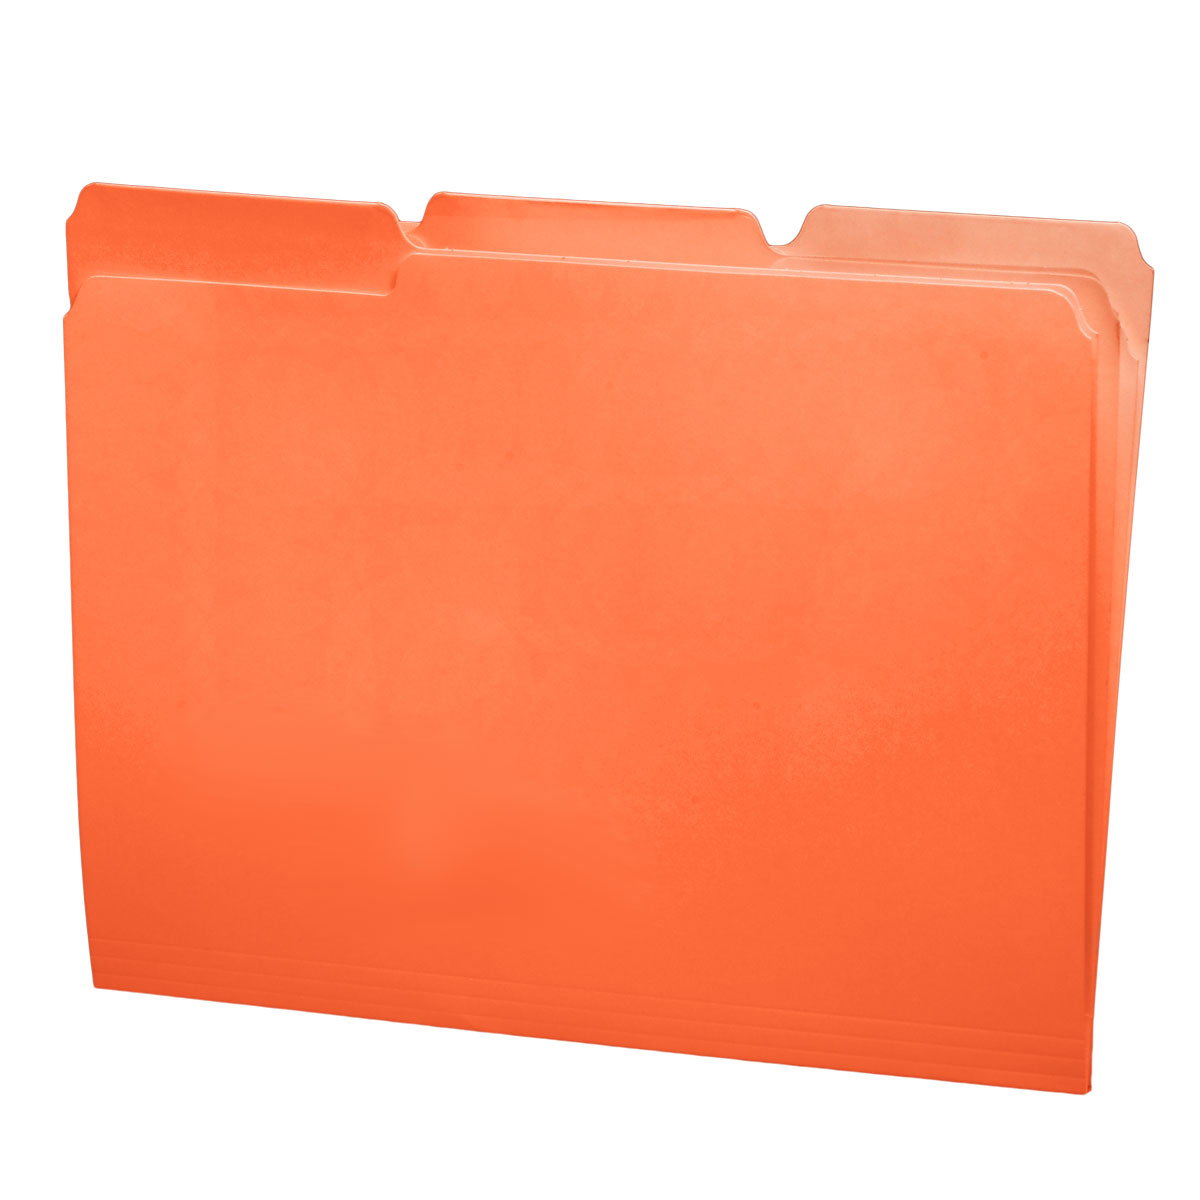 S-30503-ORG - 11 pt Orange Folders, 1/3 Cut Top Tab - Assorted, Letter Size (Box of 100)